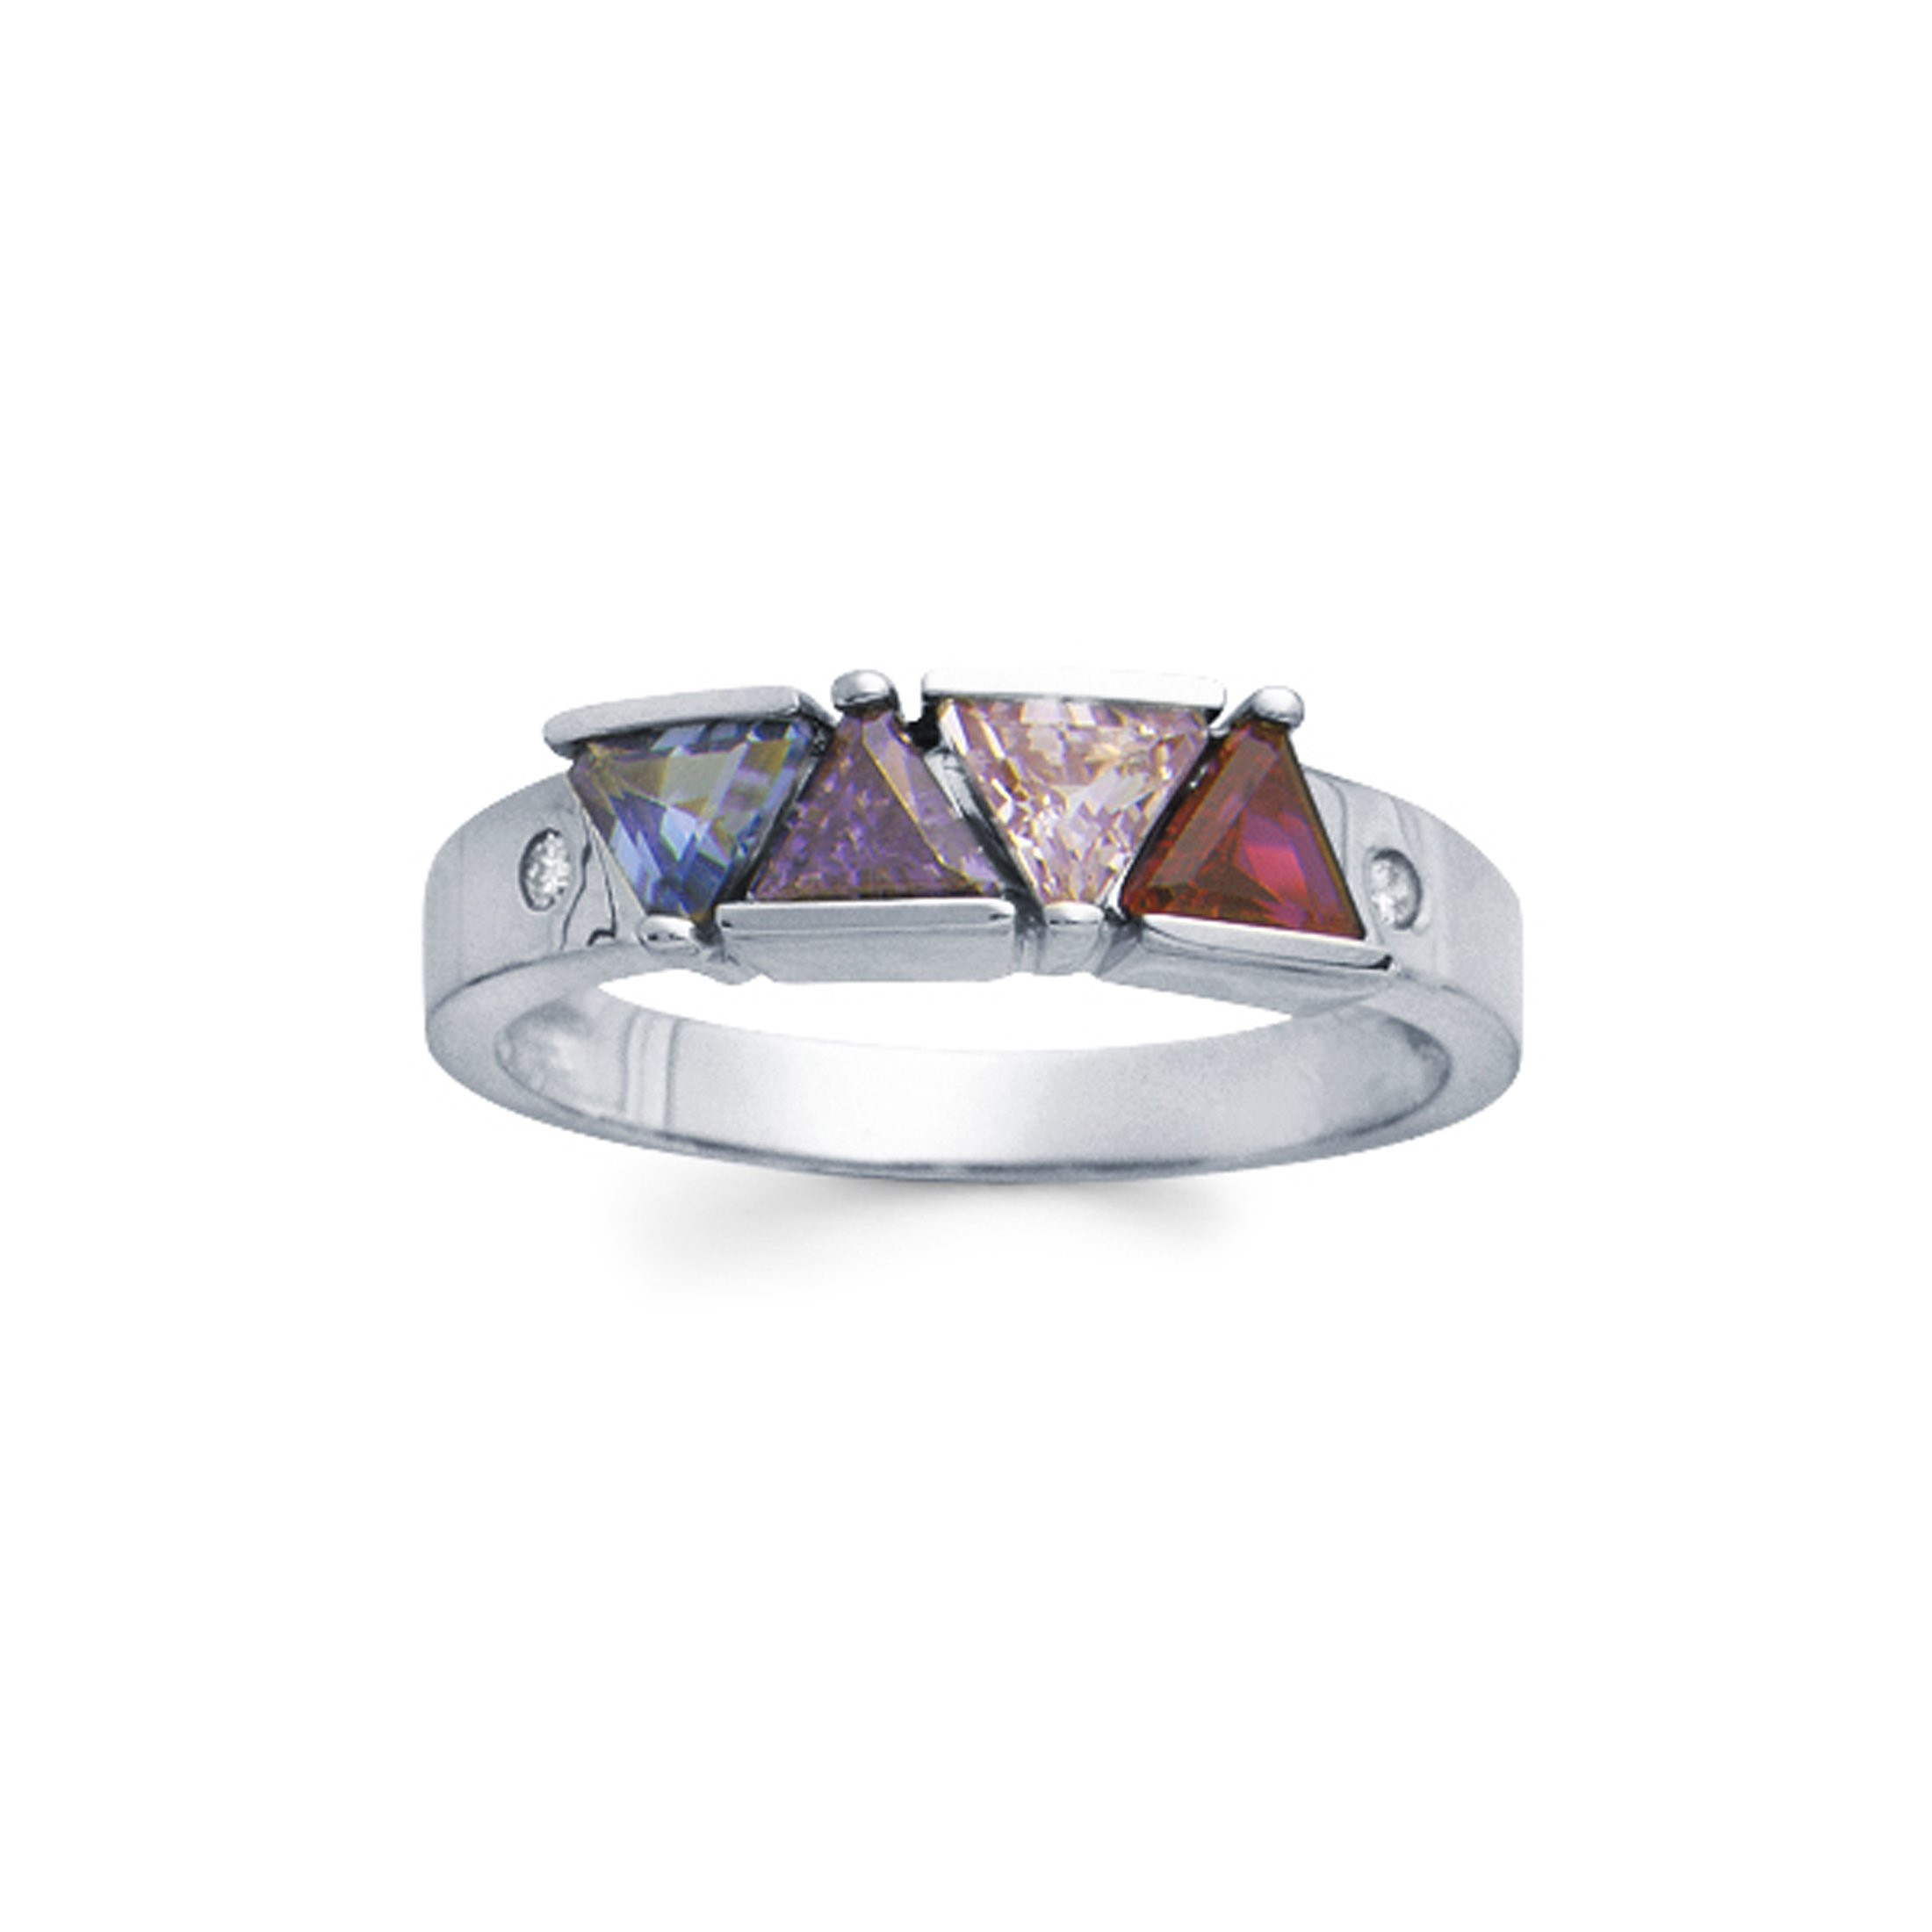 925 Sterling Silver Personalized Simulated Birthstone Ring with Diamond Accent - Custom Made!